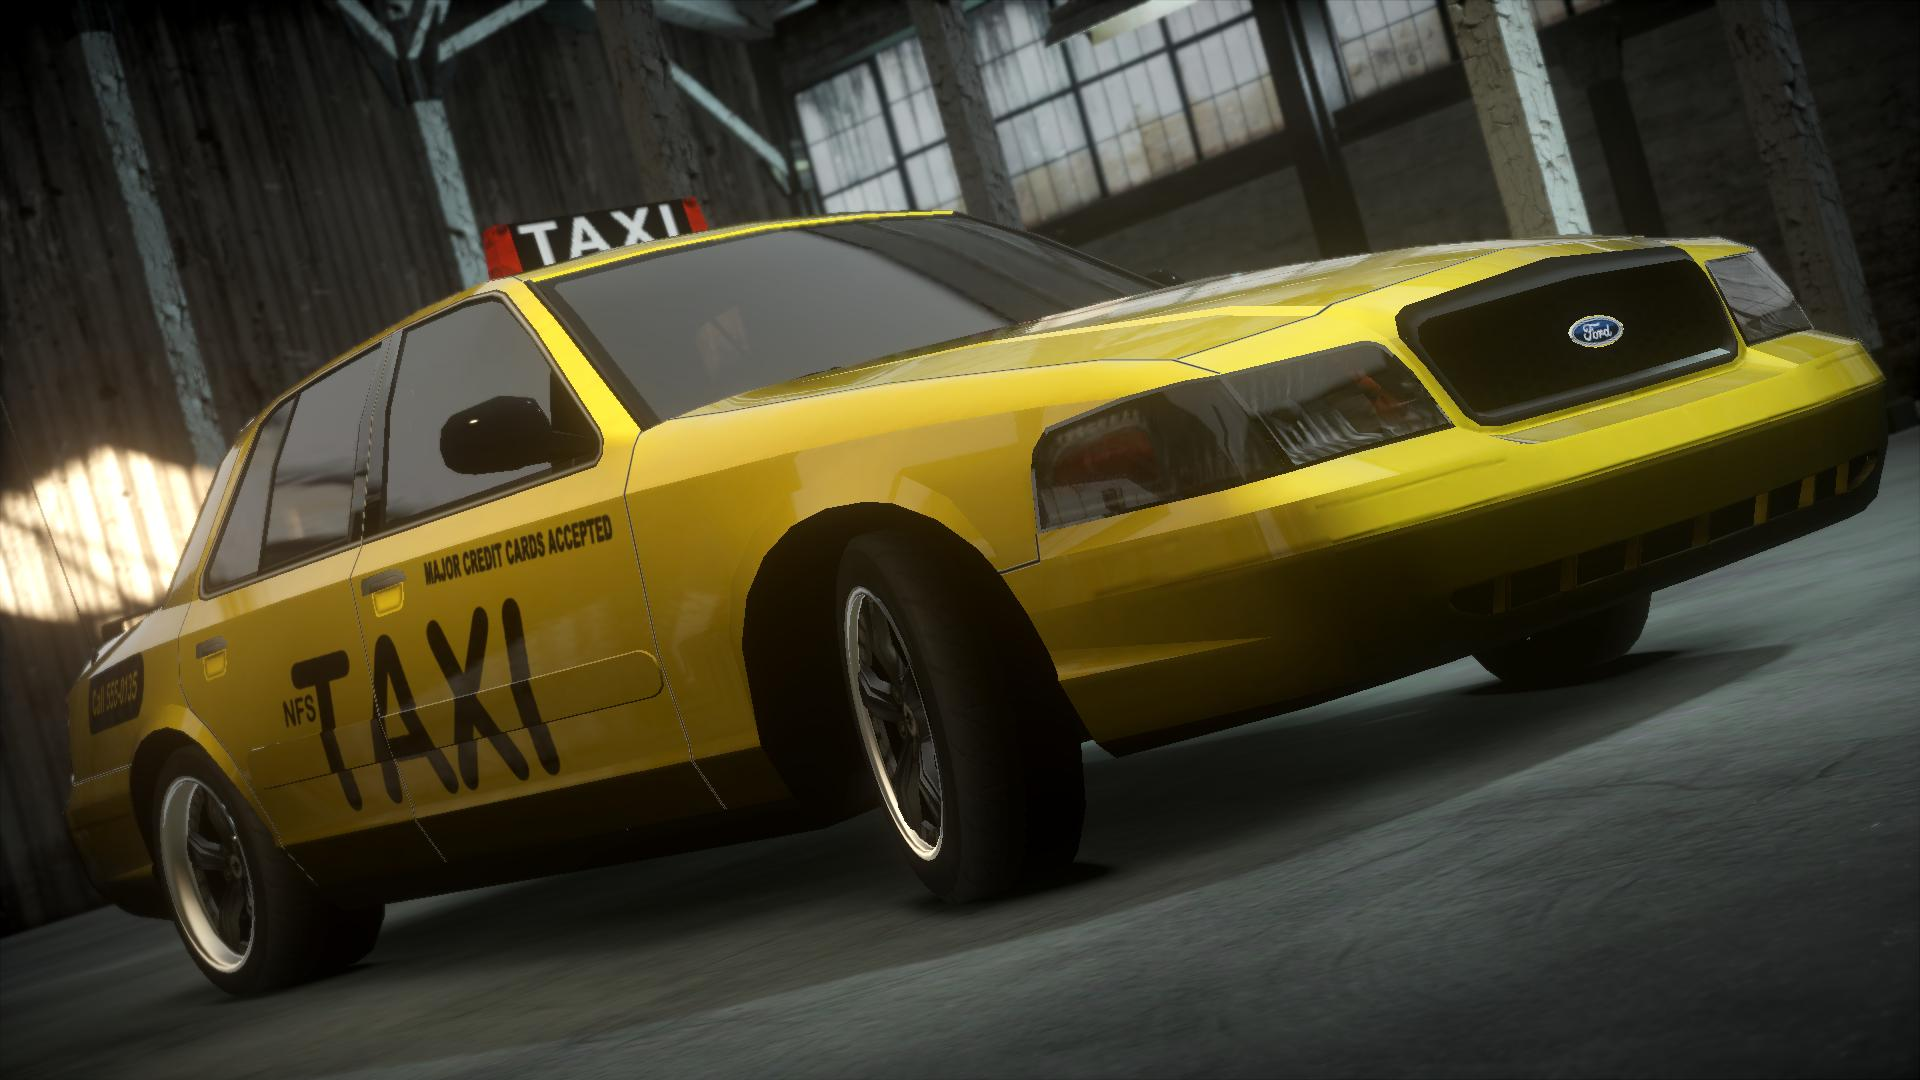 Taxi | Need for Speed Wiki | FANDOM powered by Wikia